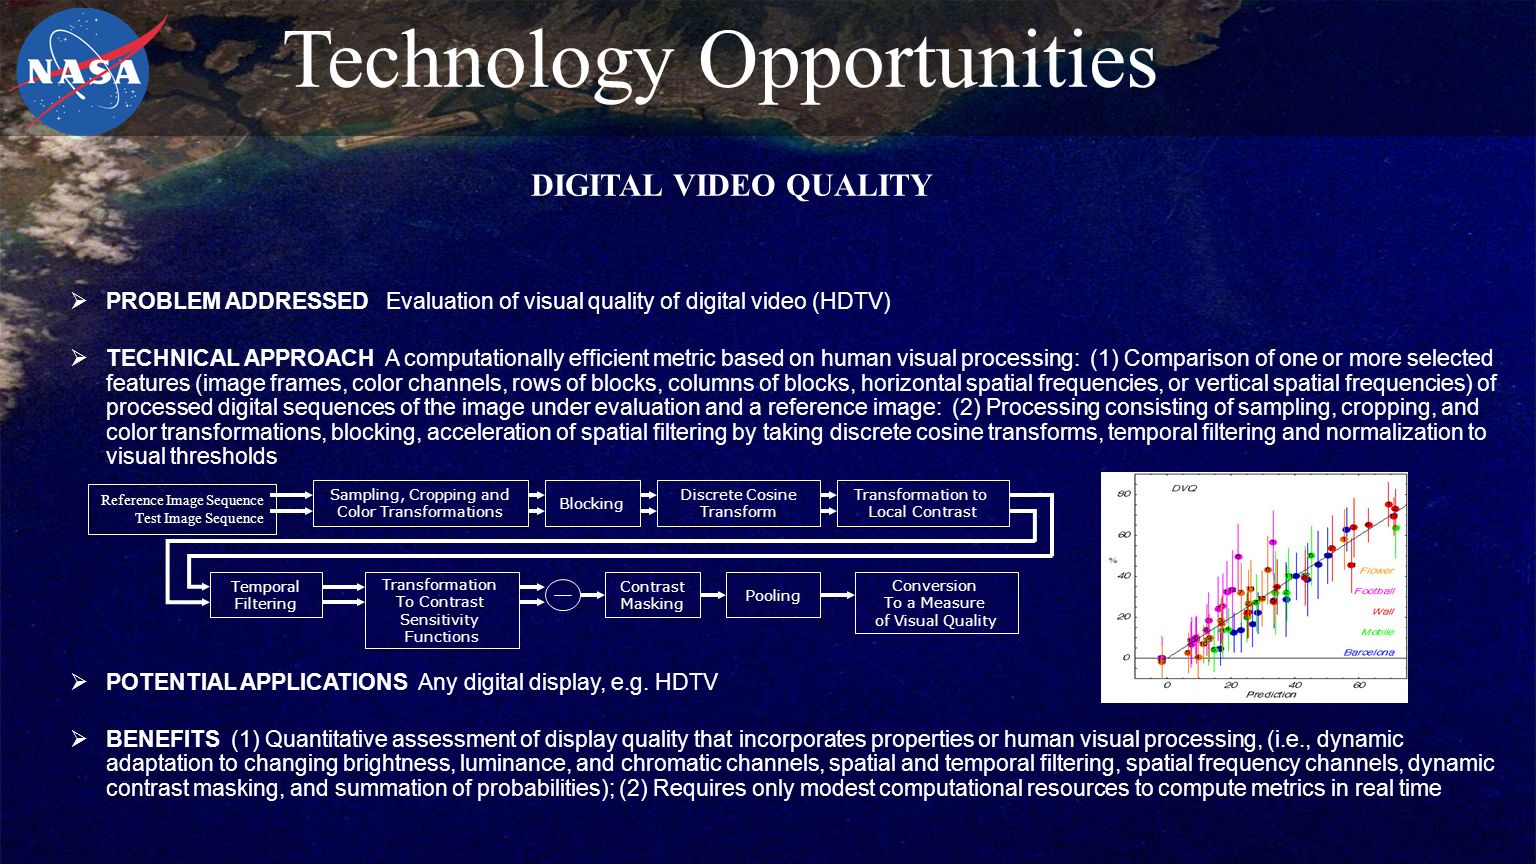  PROBLEM ADDRESSED Evaluation of visual quality of digital video (HDTV)  TECHNICAL APPROACH A computationally efficient metric based on human visual processing: (1) Comparison of one or more selected features (image frames, color channels, rows of blocks, columns of blocks, horizontal spatial frequencies, or vertical spatial frequencies) of processed digital sequences of the image under evaluation and a reference image: (2) Processing consisting of sampling, cropping, and color transformations, blocking, acceleration of spatial filtering by taking discrete cosine transforms, temporal filtering and normalization to visual thresholds  POTENTIAL APPLICATIONS Any digital display, e.g.